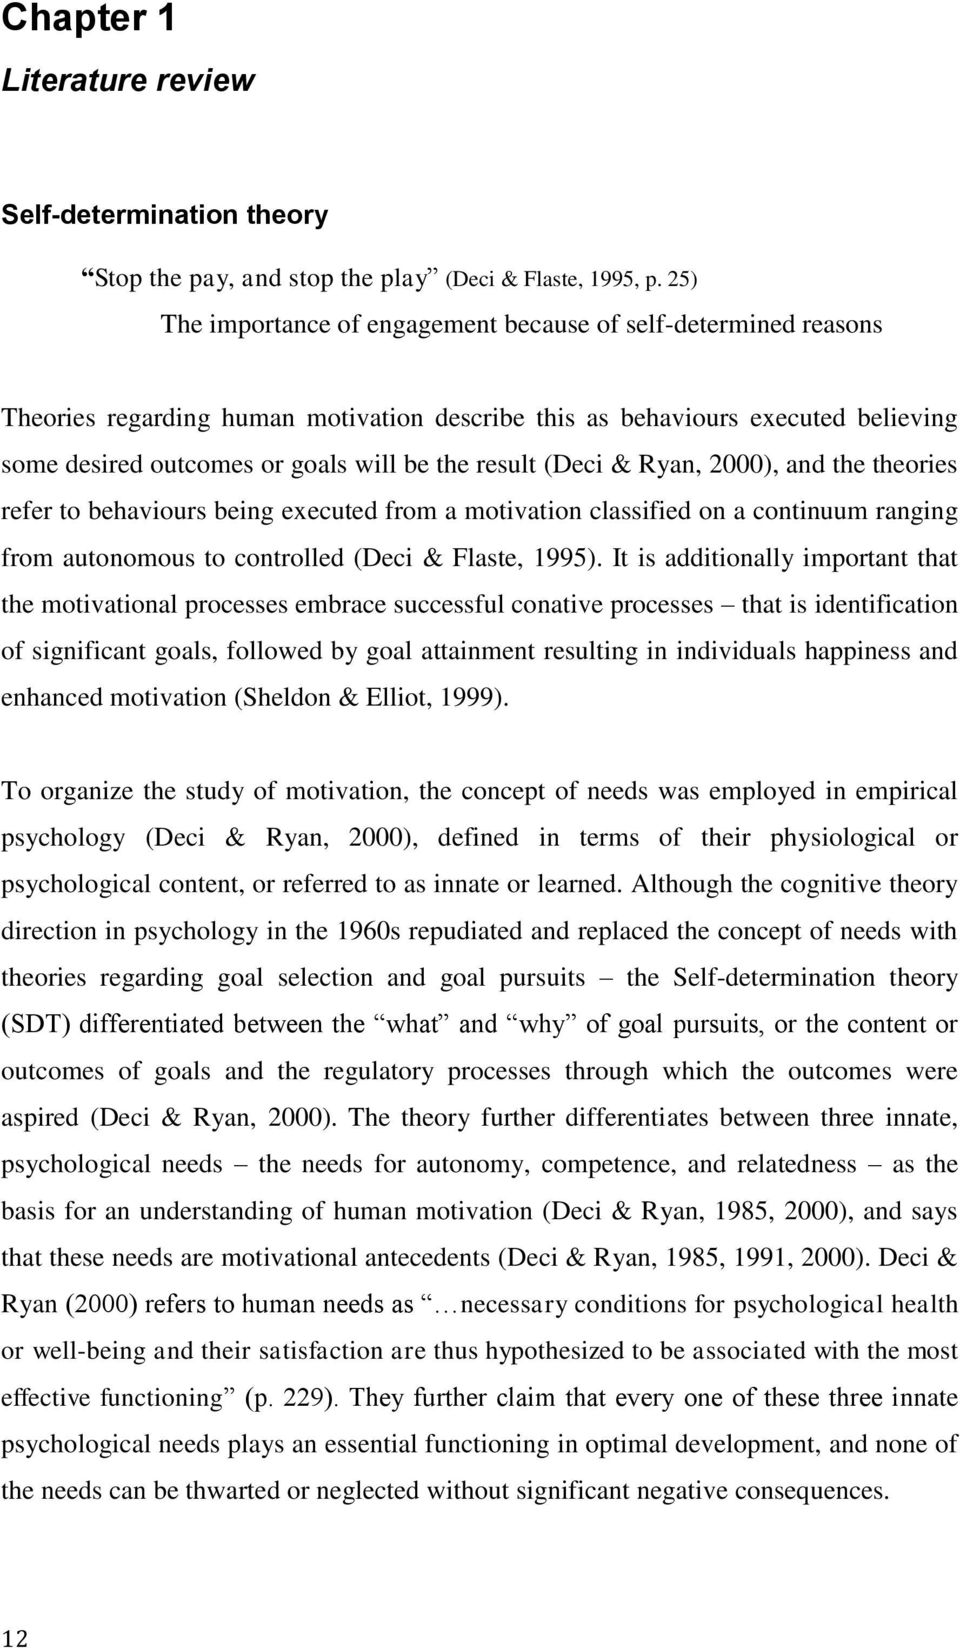 result (Deci & Ryan, 2000), and the theories refer to behaviours being executed from a motivation classified on a continuum ranging from autonomous to controlled (Deci & Flaste, 1995).